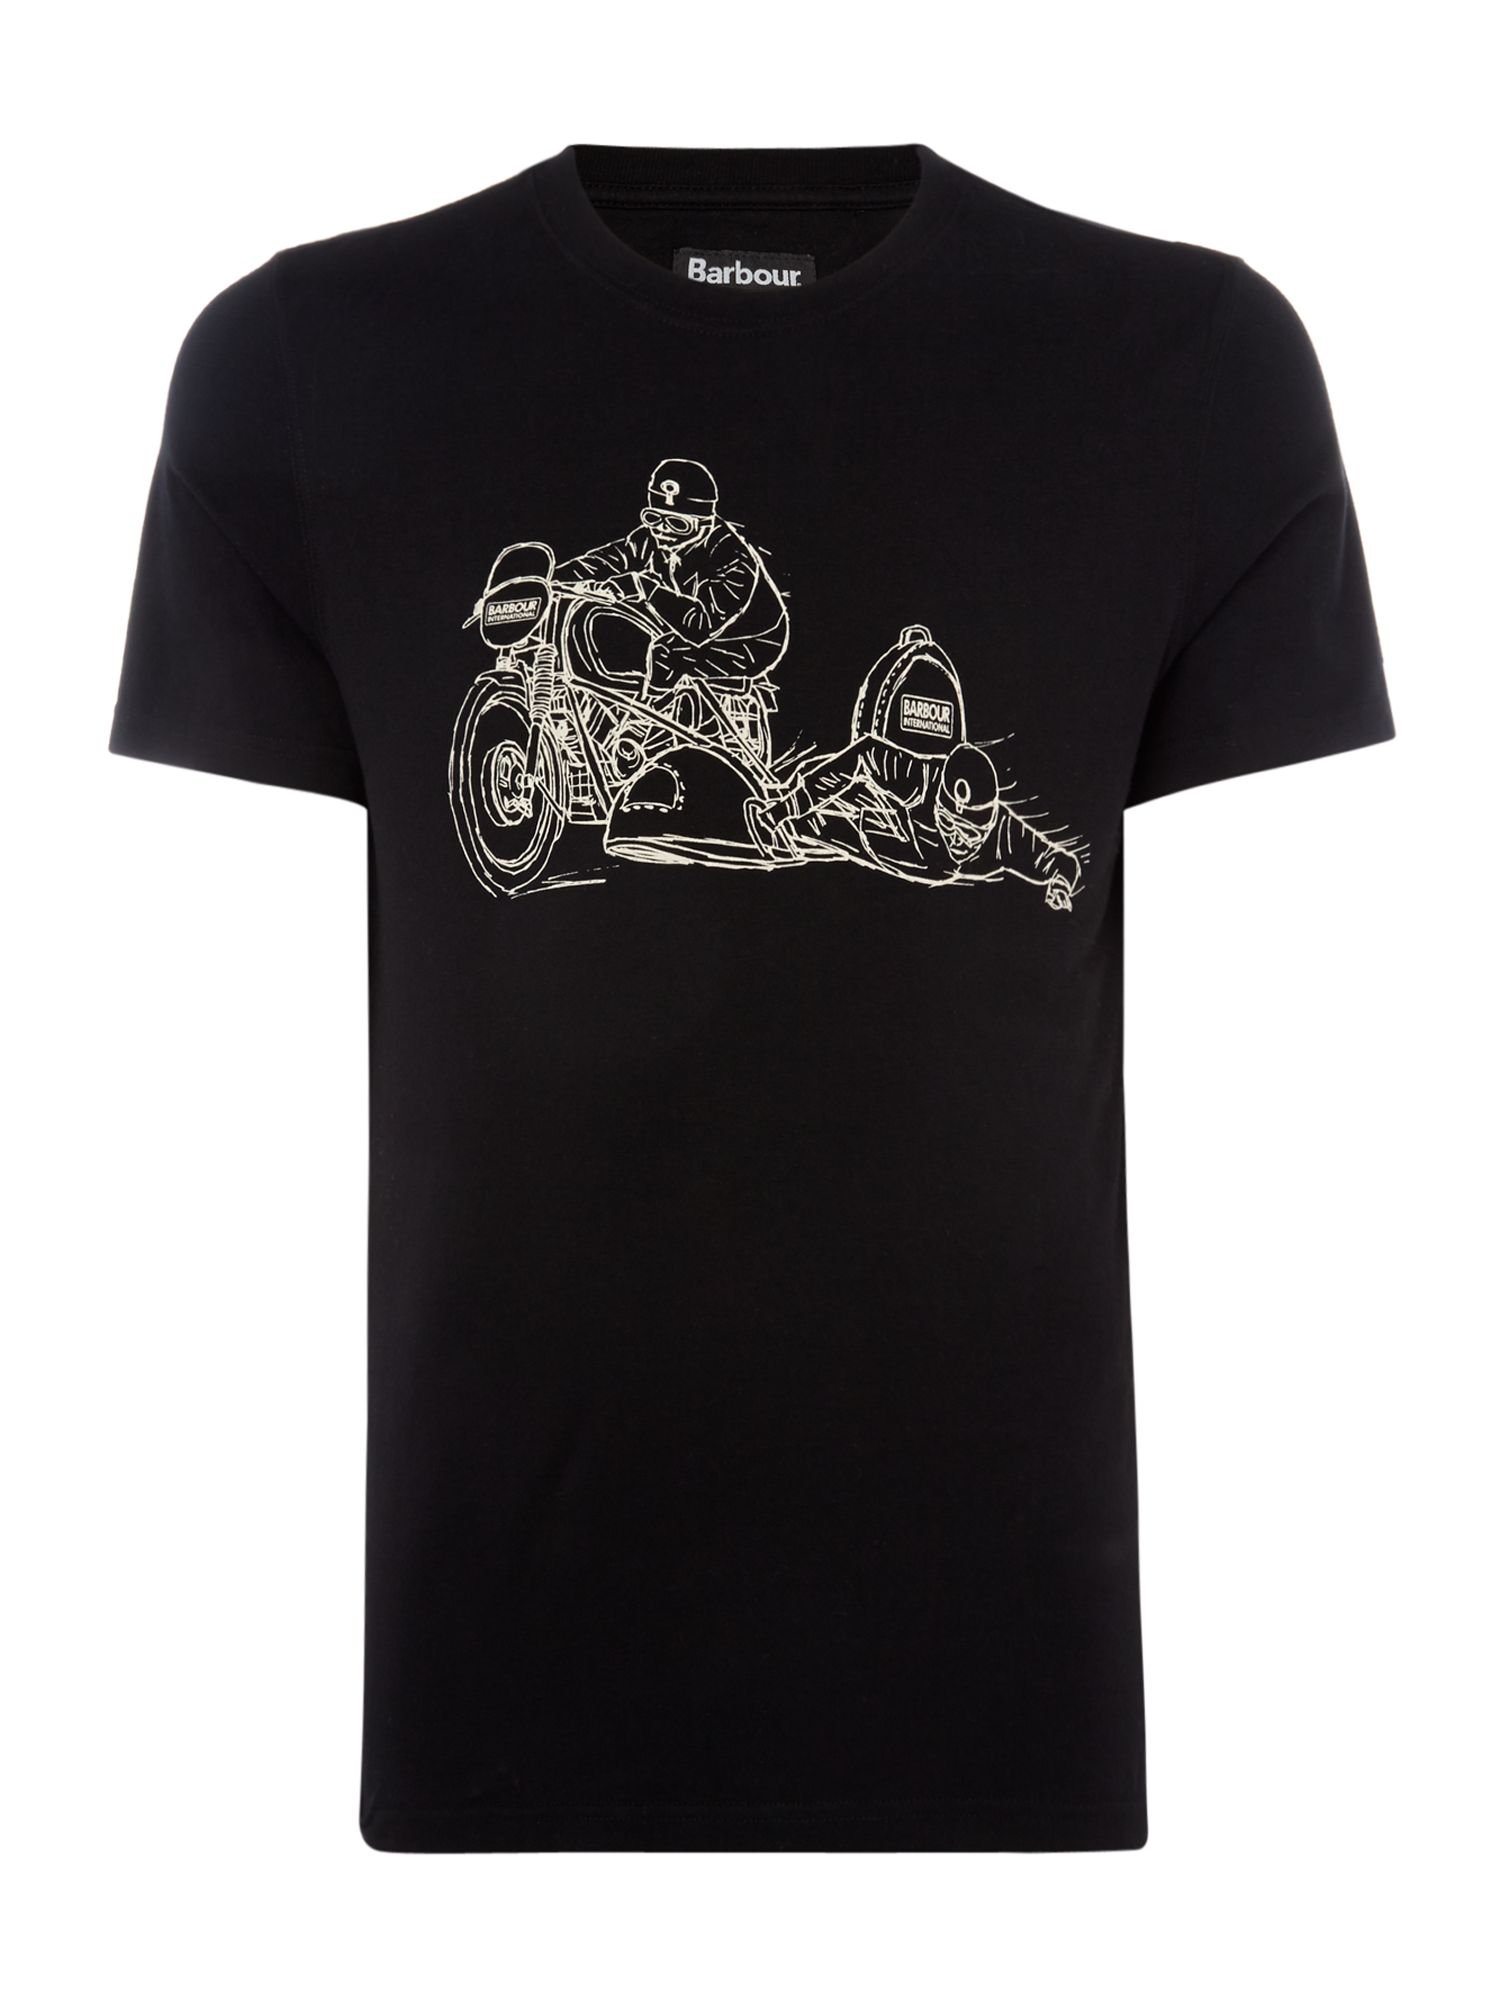 Men's Barbour Side cab short sleeve tshirt, Black